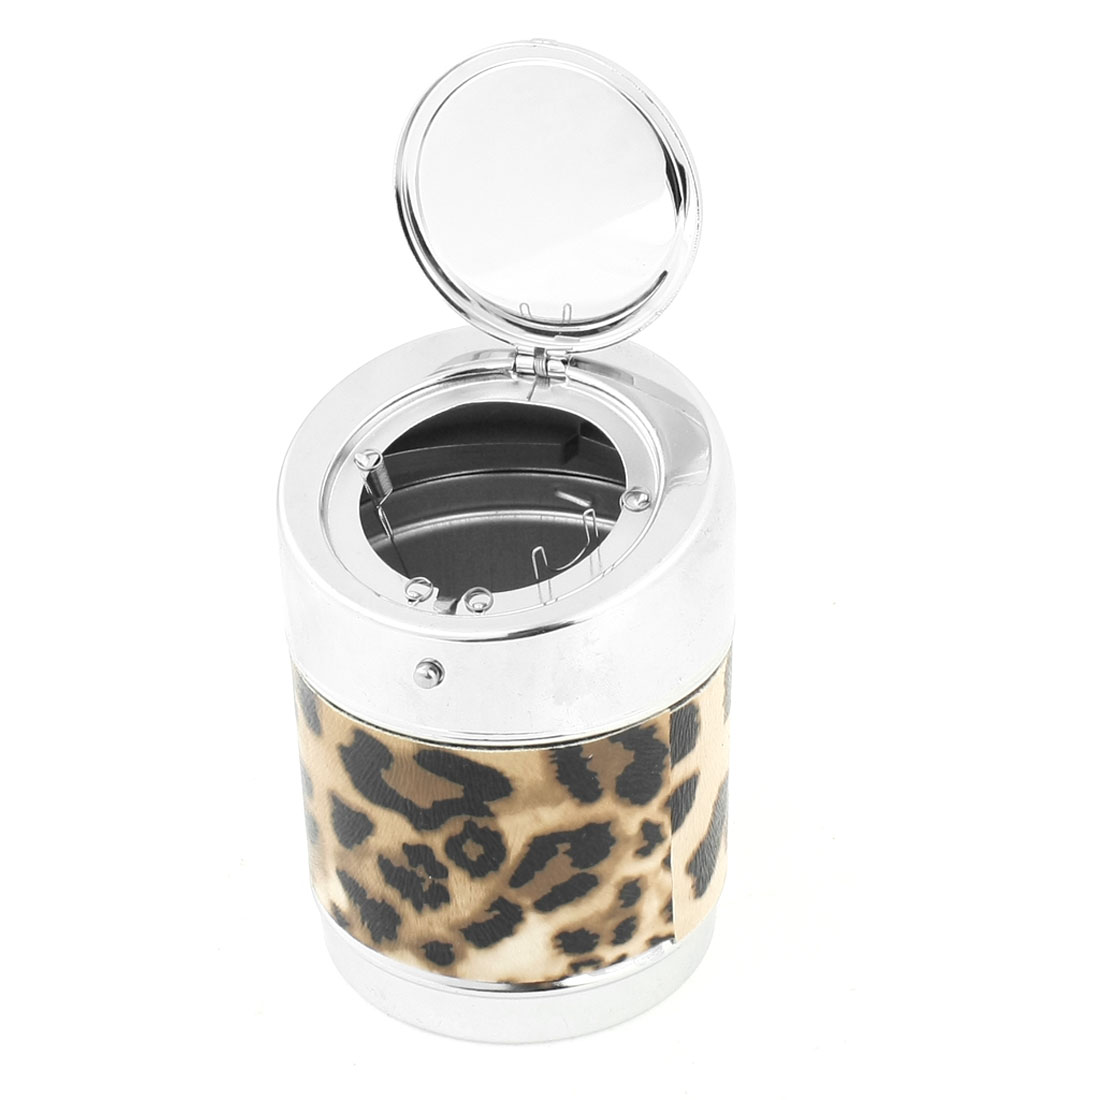 9.5x6.5cm Leopard Pattern Stainless Steel Ash Holder Box Ashtray